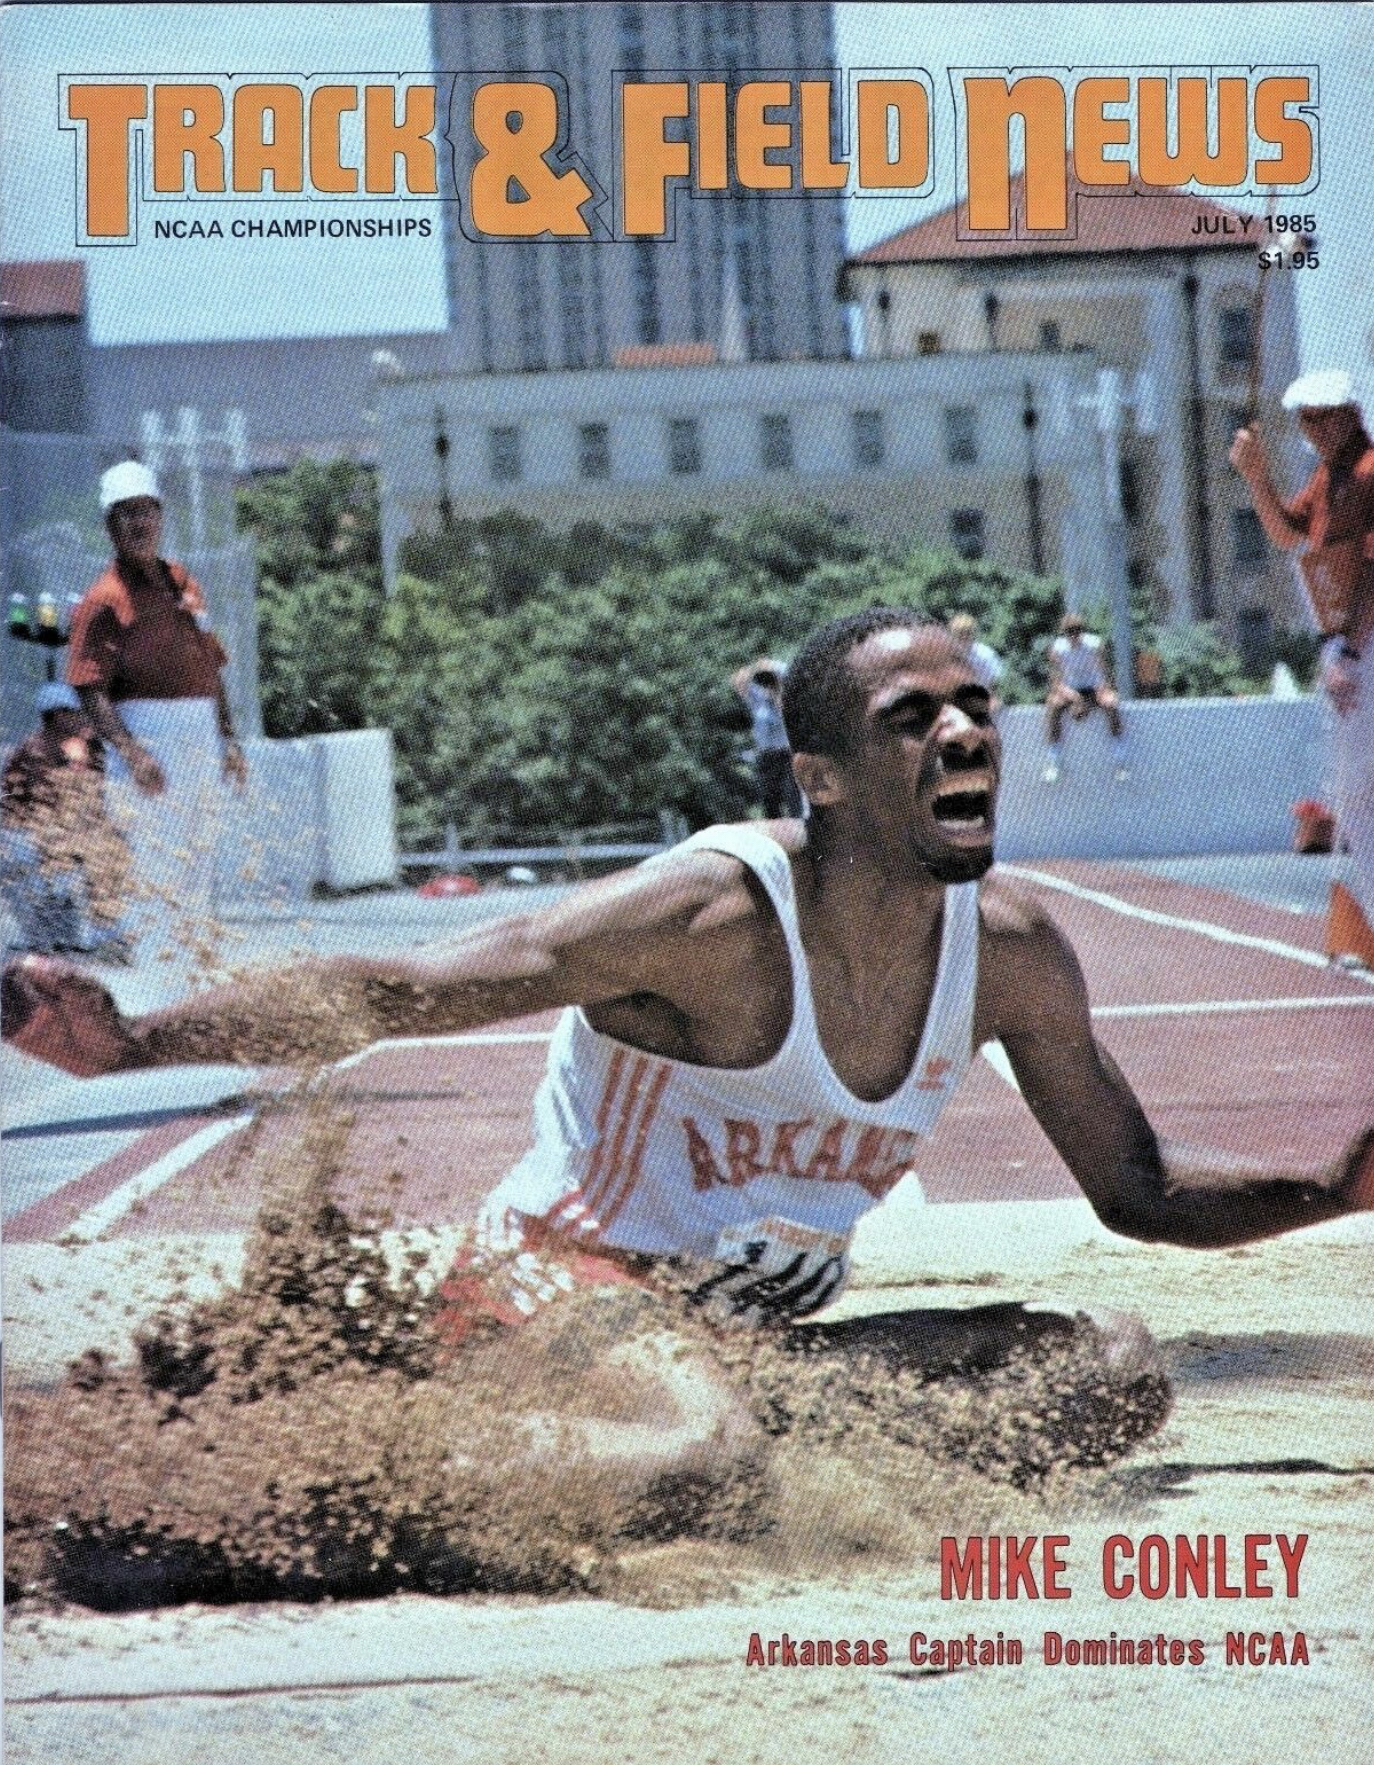 Mike Conley 1985